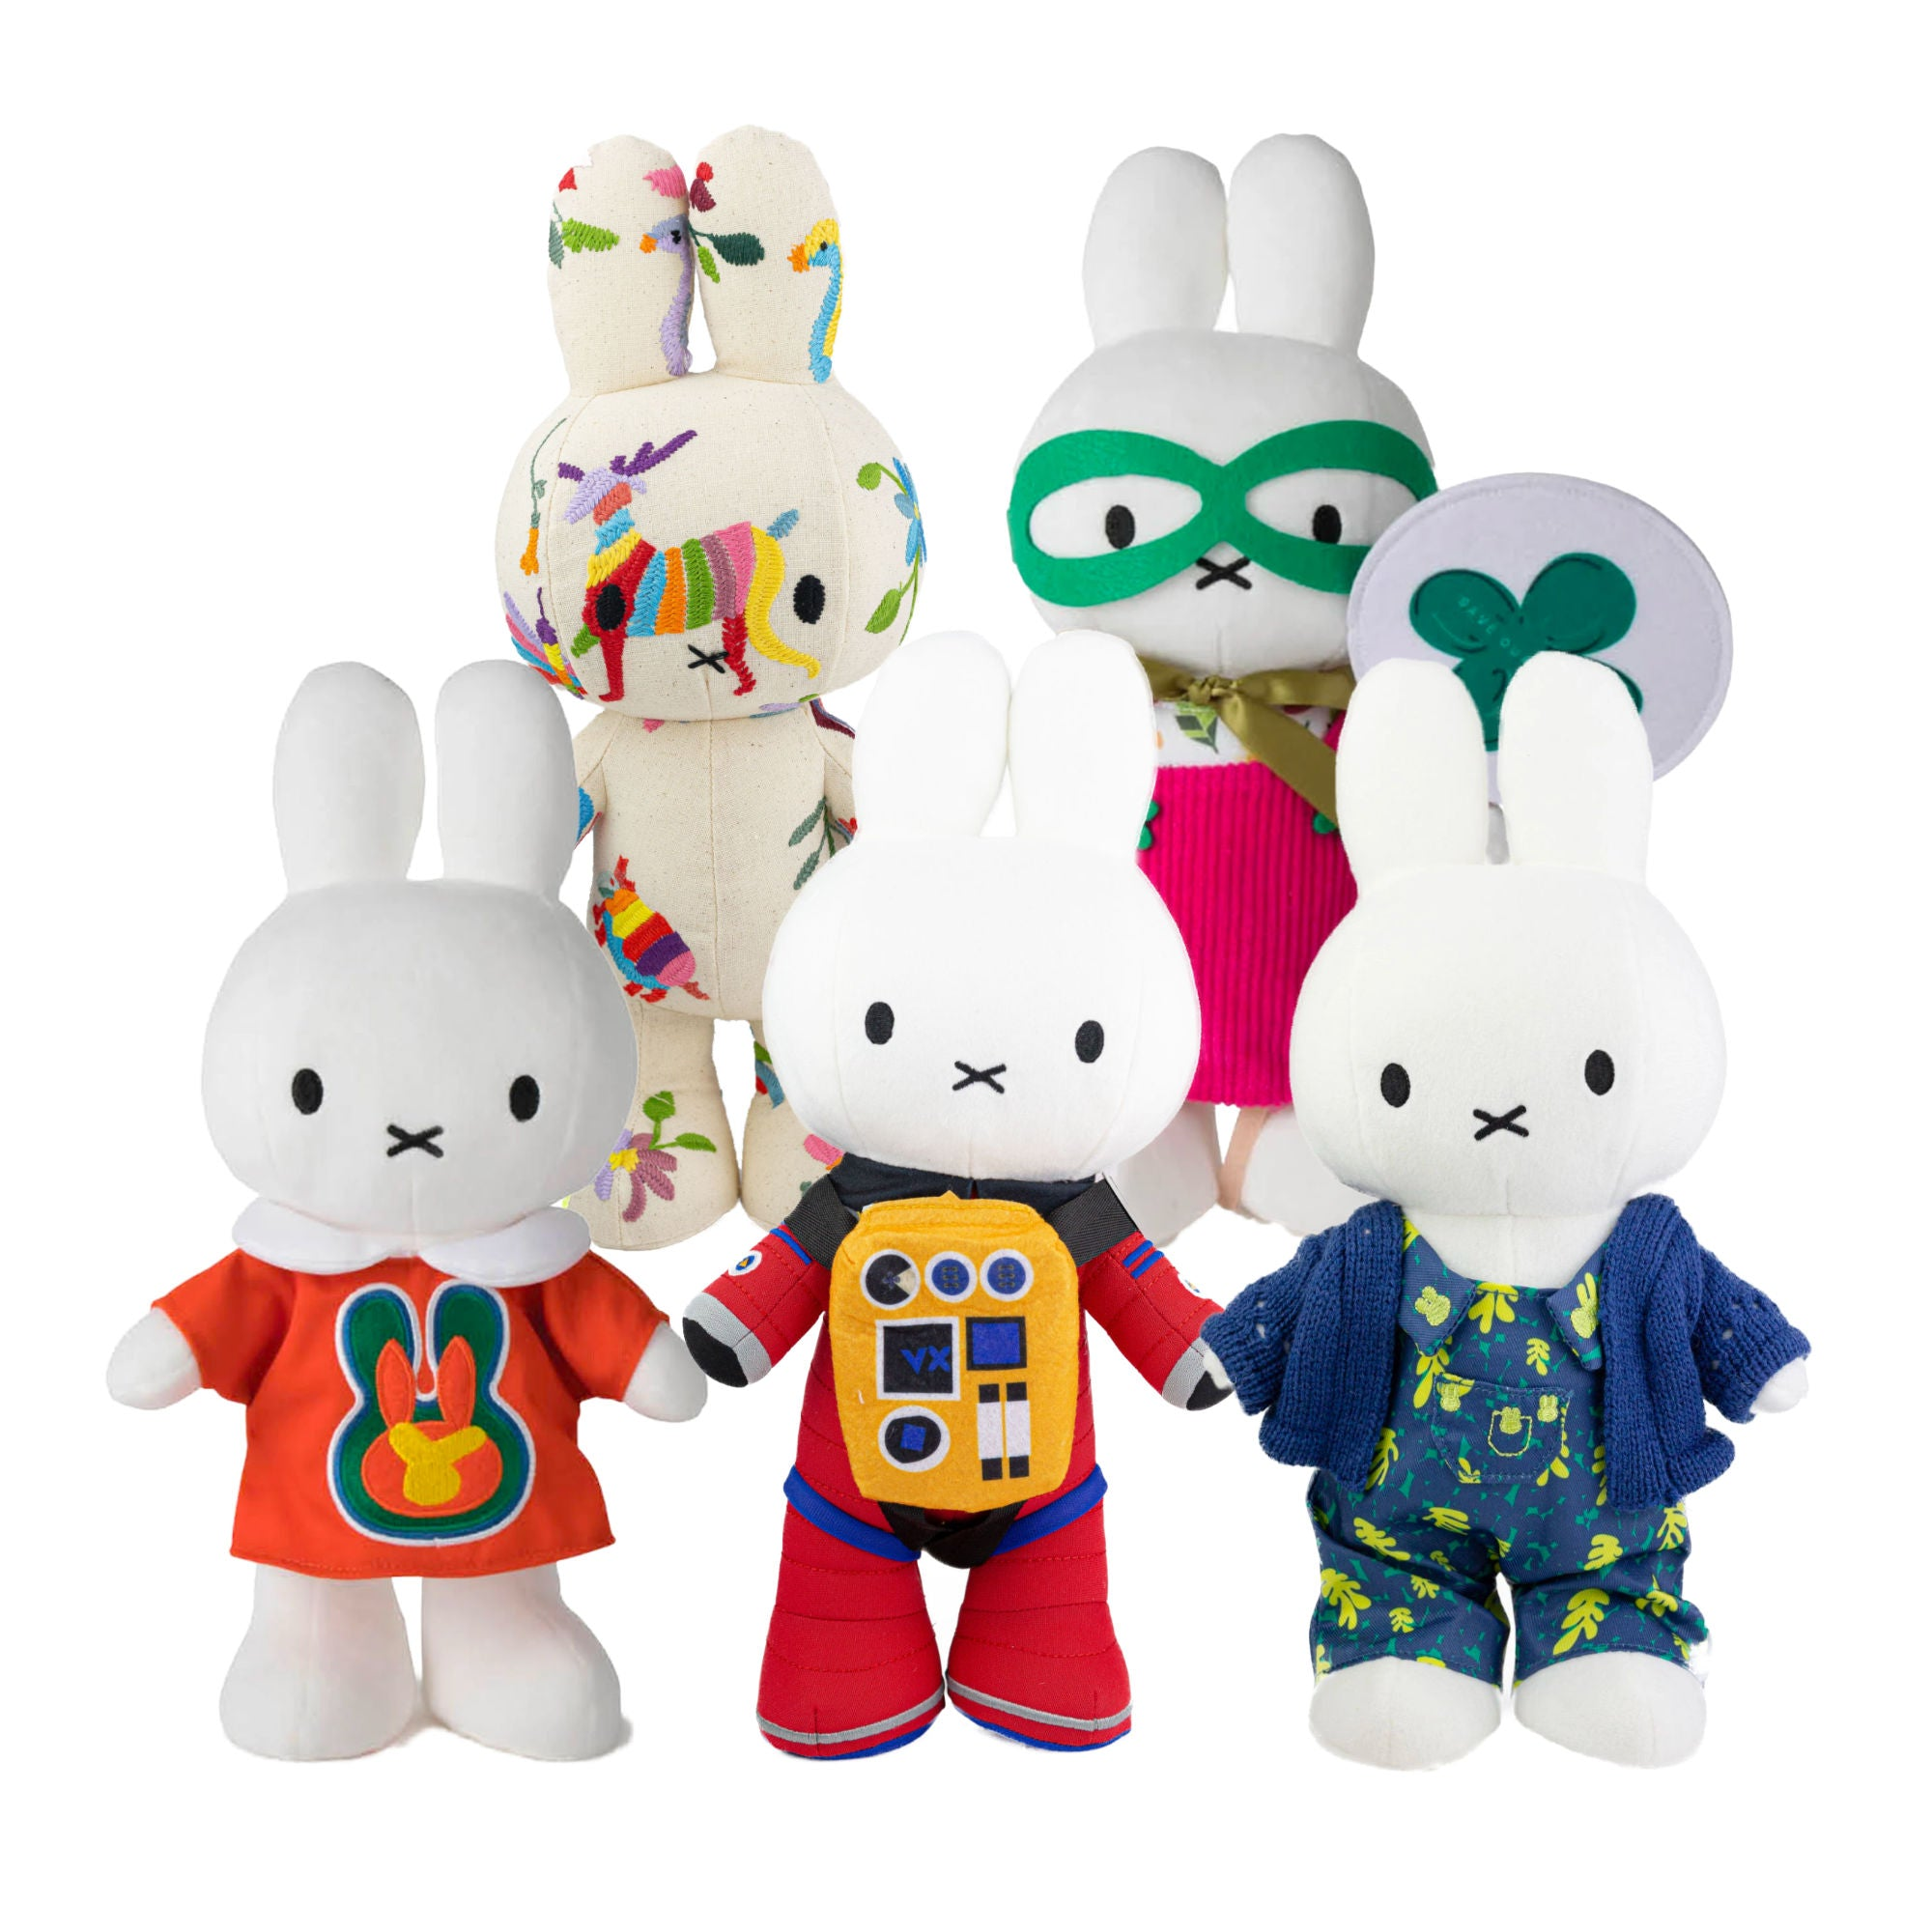 65 Years Limited Edition | Miffy Fashion Design plush doll 34cm , Full Set